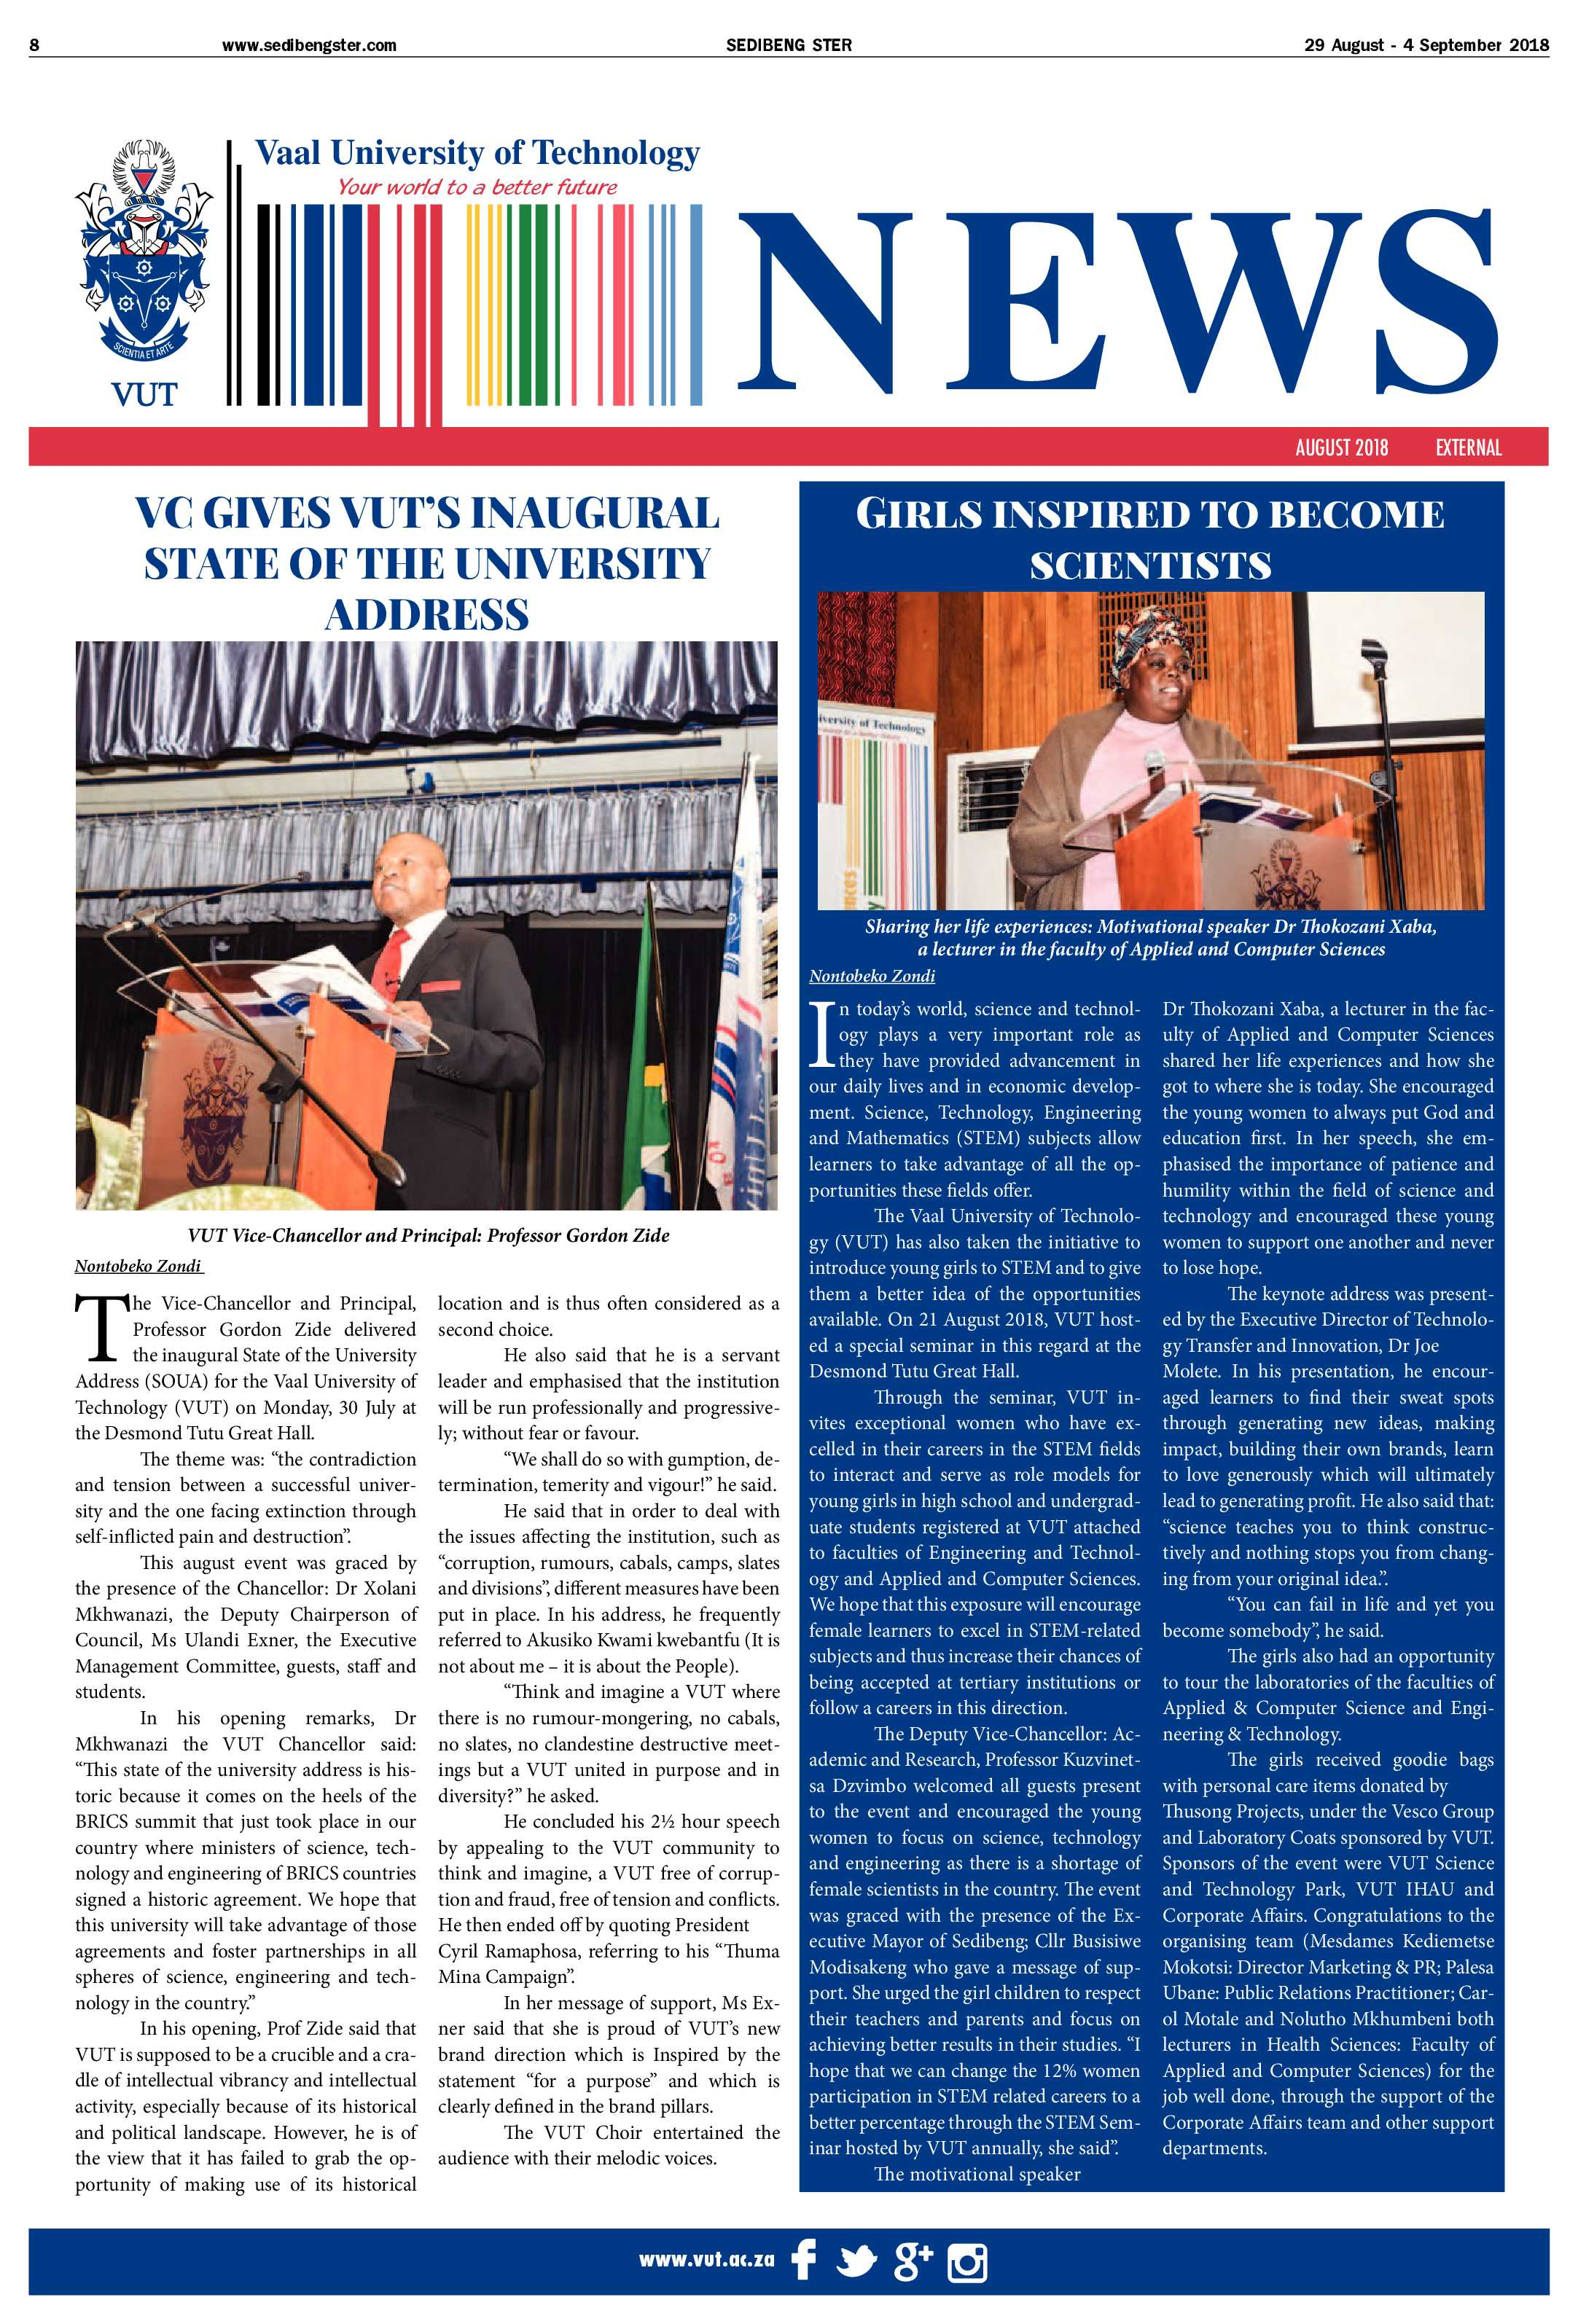 sedibeng-ster-29-august-4-september-2018-epapers-page-8